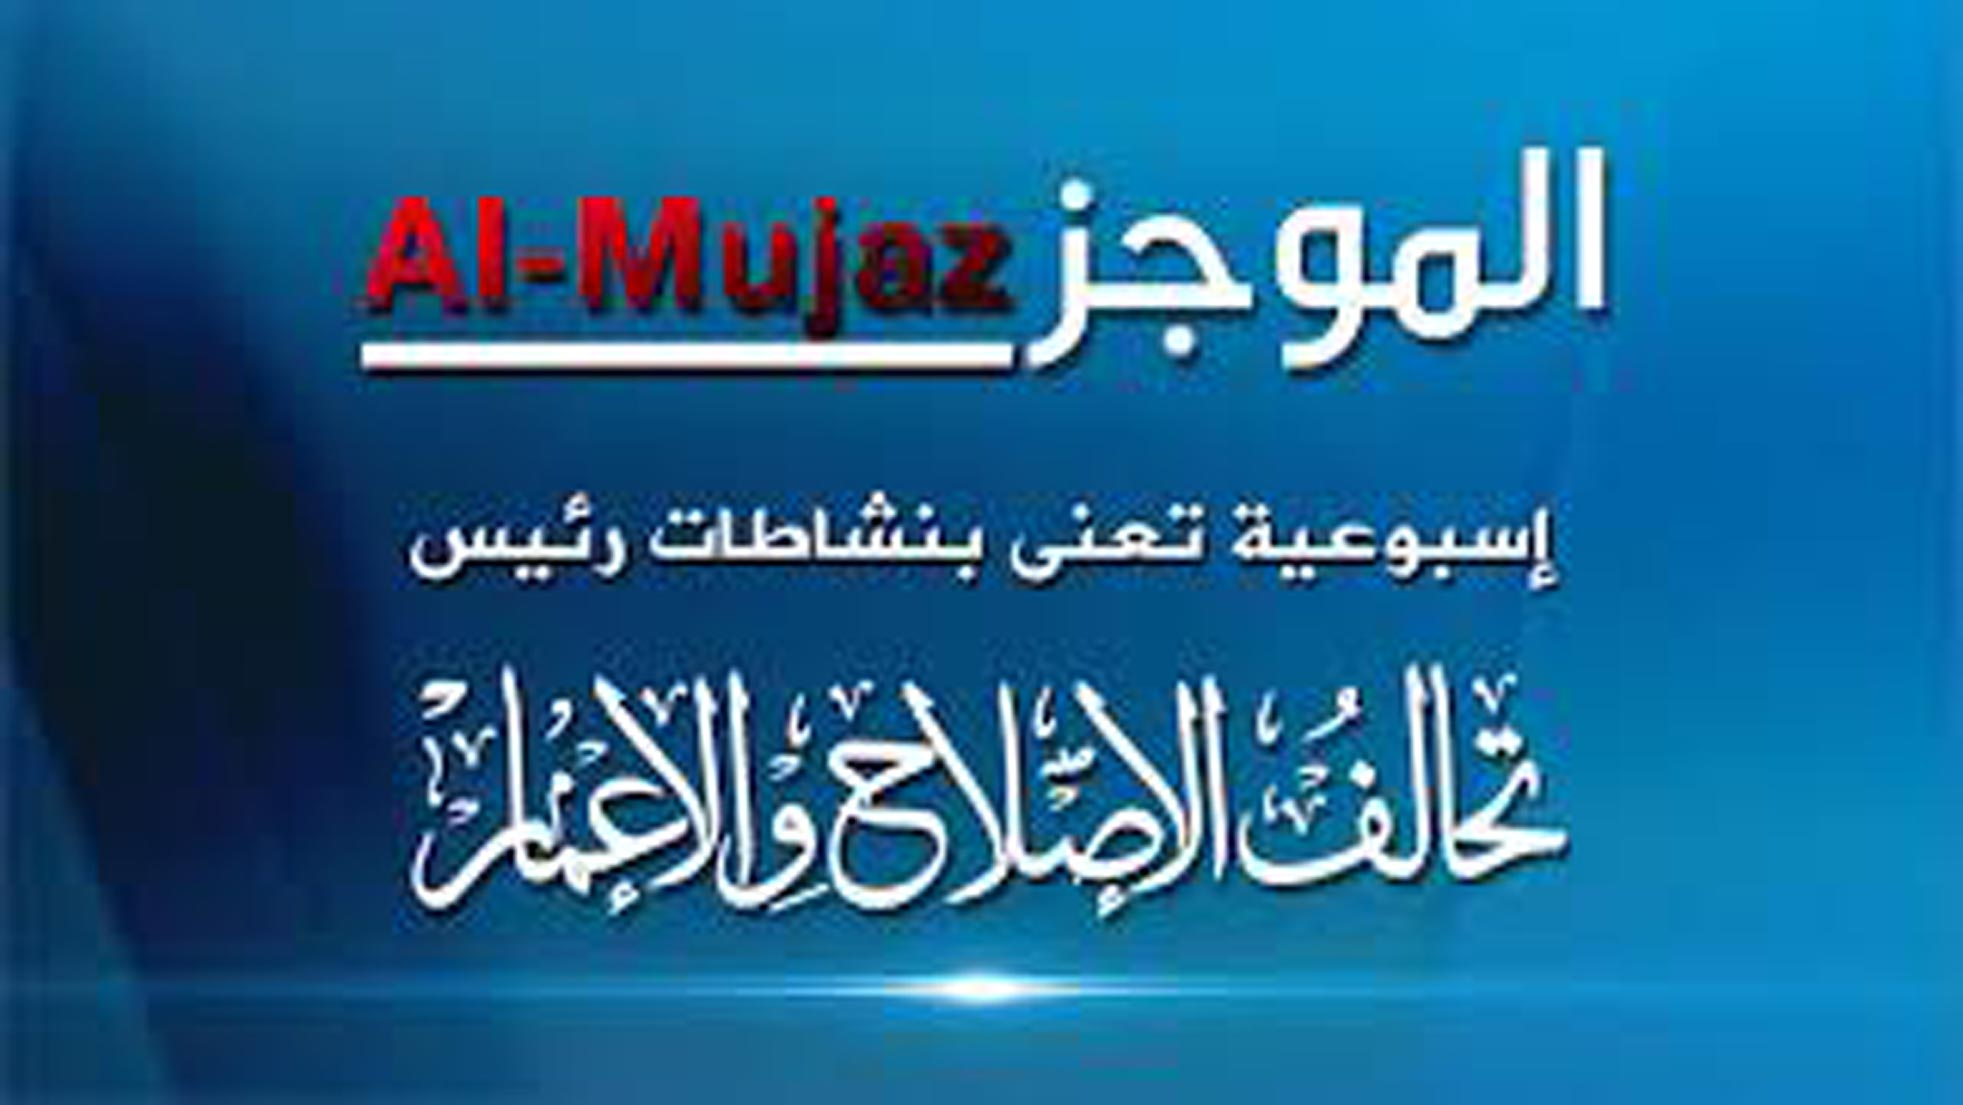 Al-Moujaz...Weekly News of activities of the Head of the Al-Hikma National Movemen